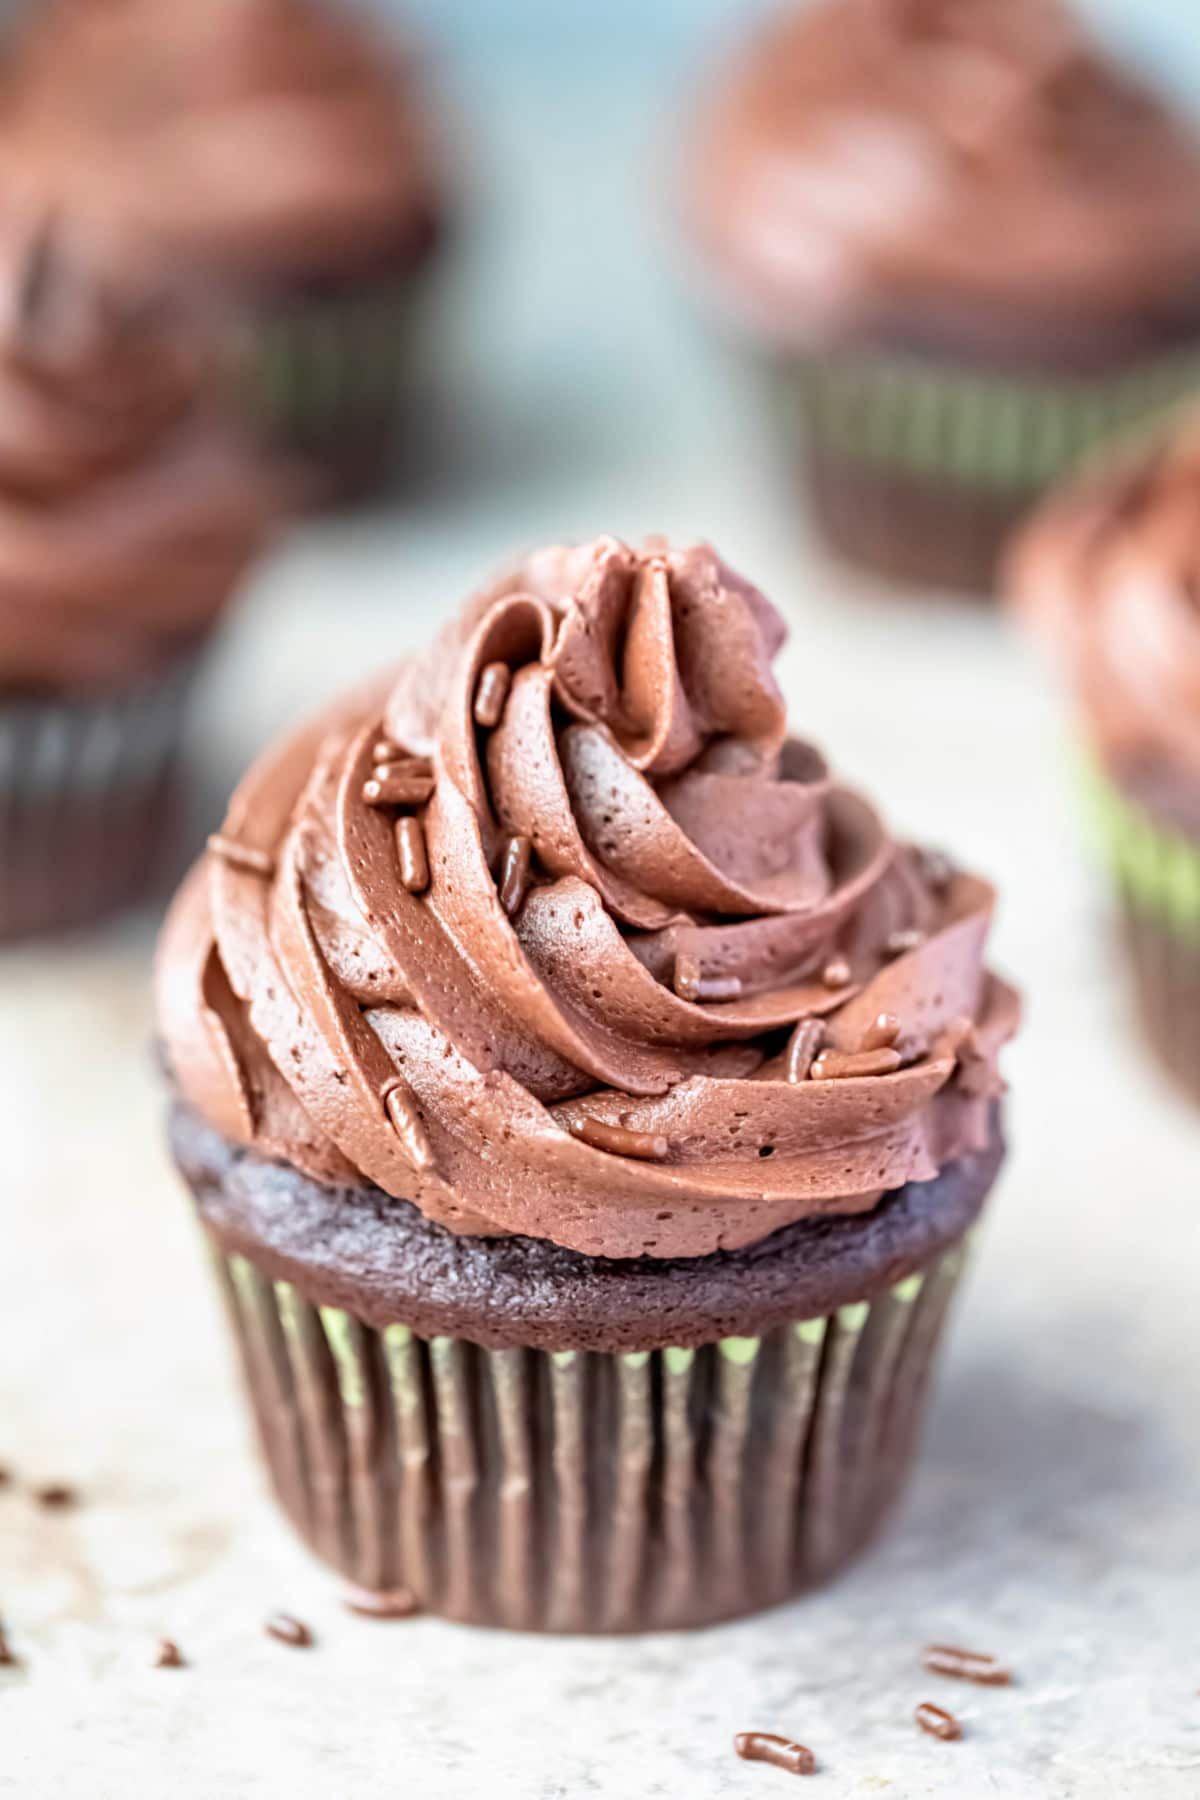 Chocolate cupcake with a swirl of chocolate buttercream frosting and chocolate sprinkles.